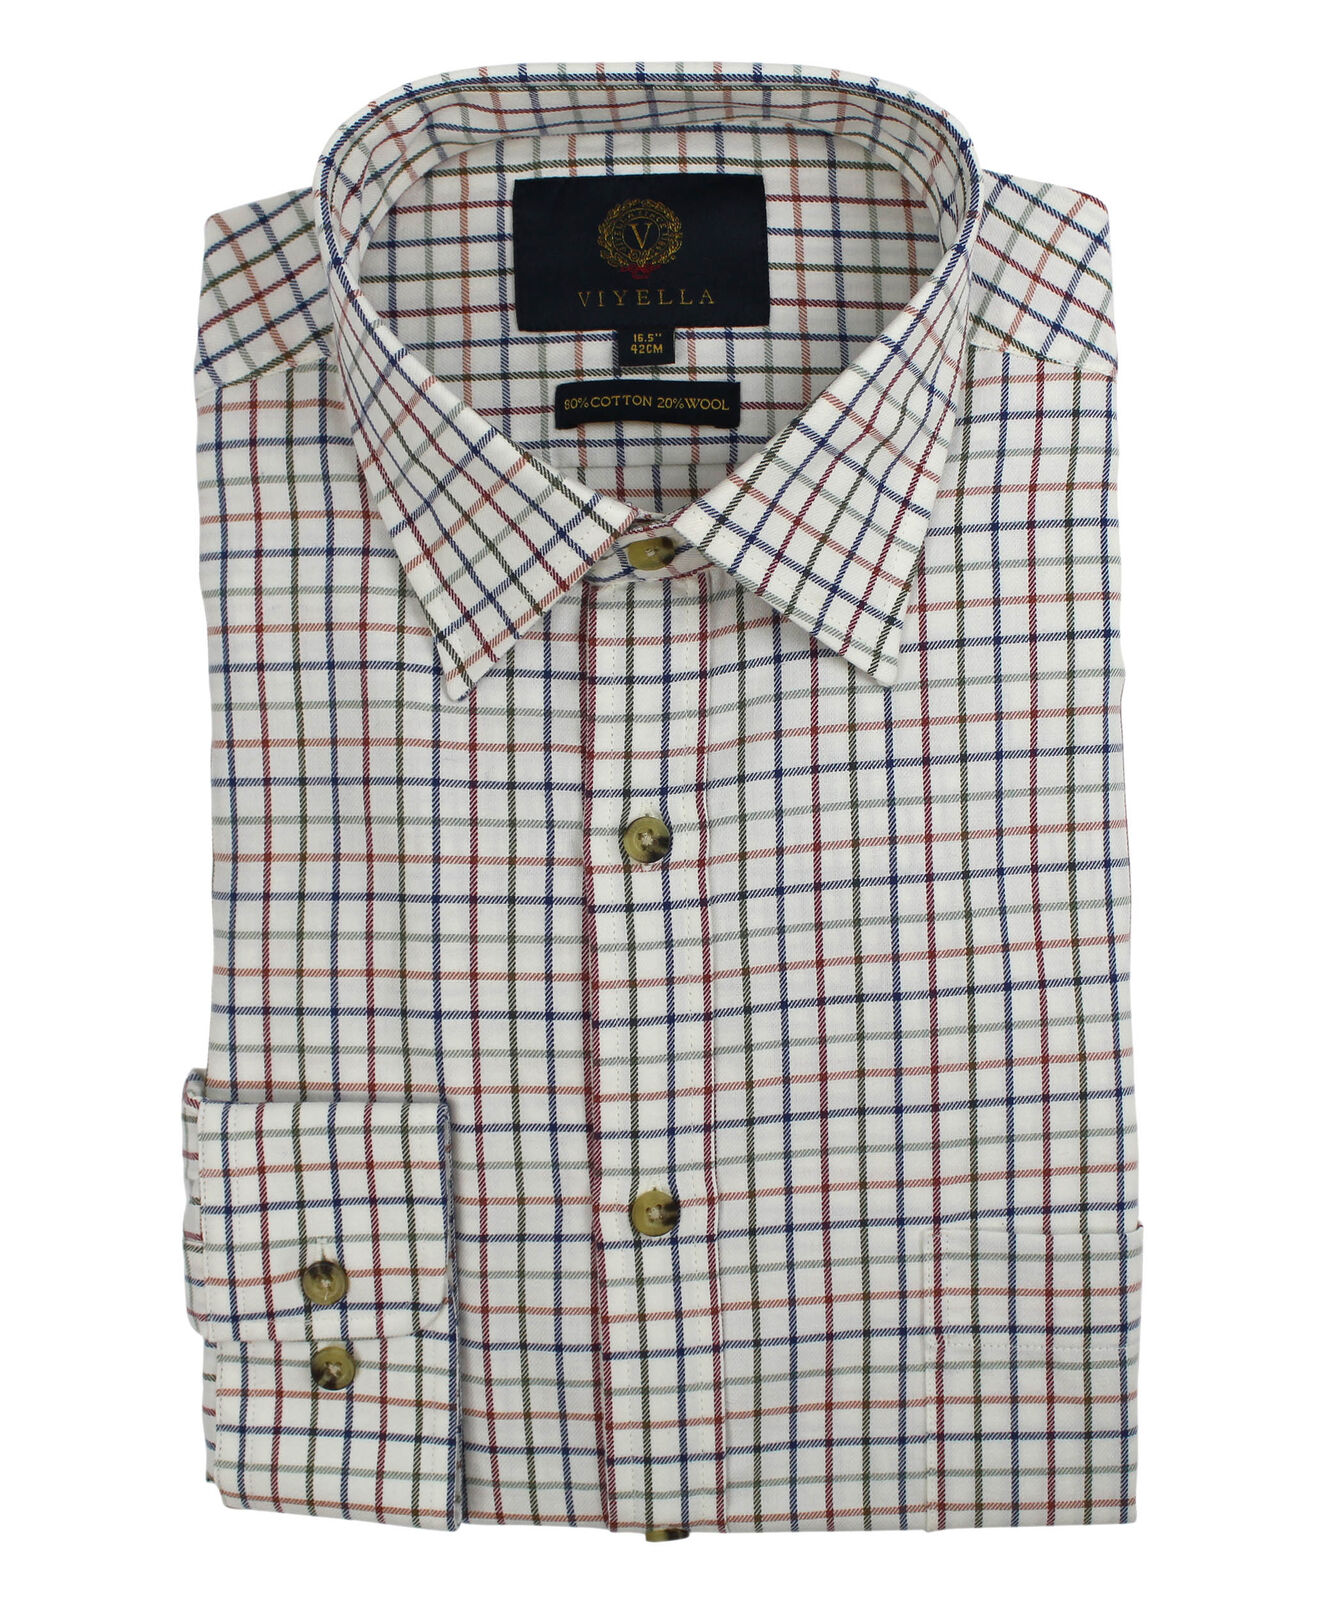 Viyella Plum Tattersall 80 20 Cotton Wool Blend Shirt